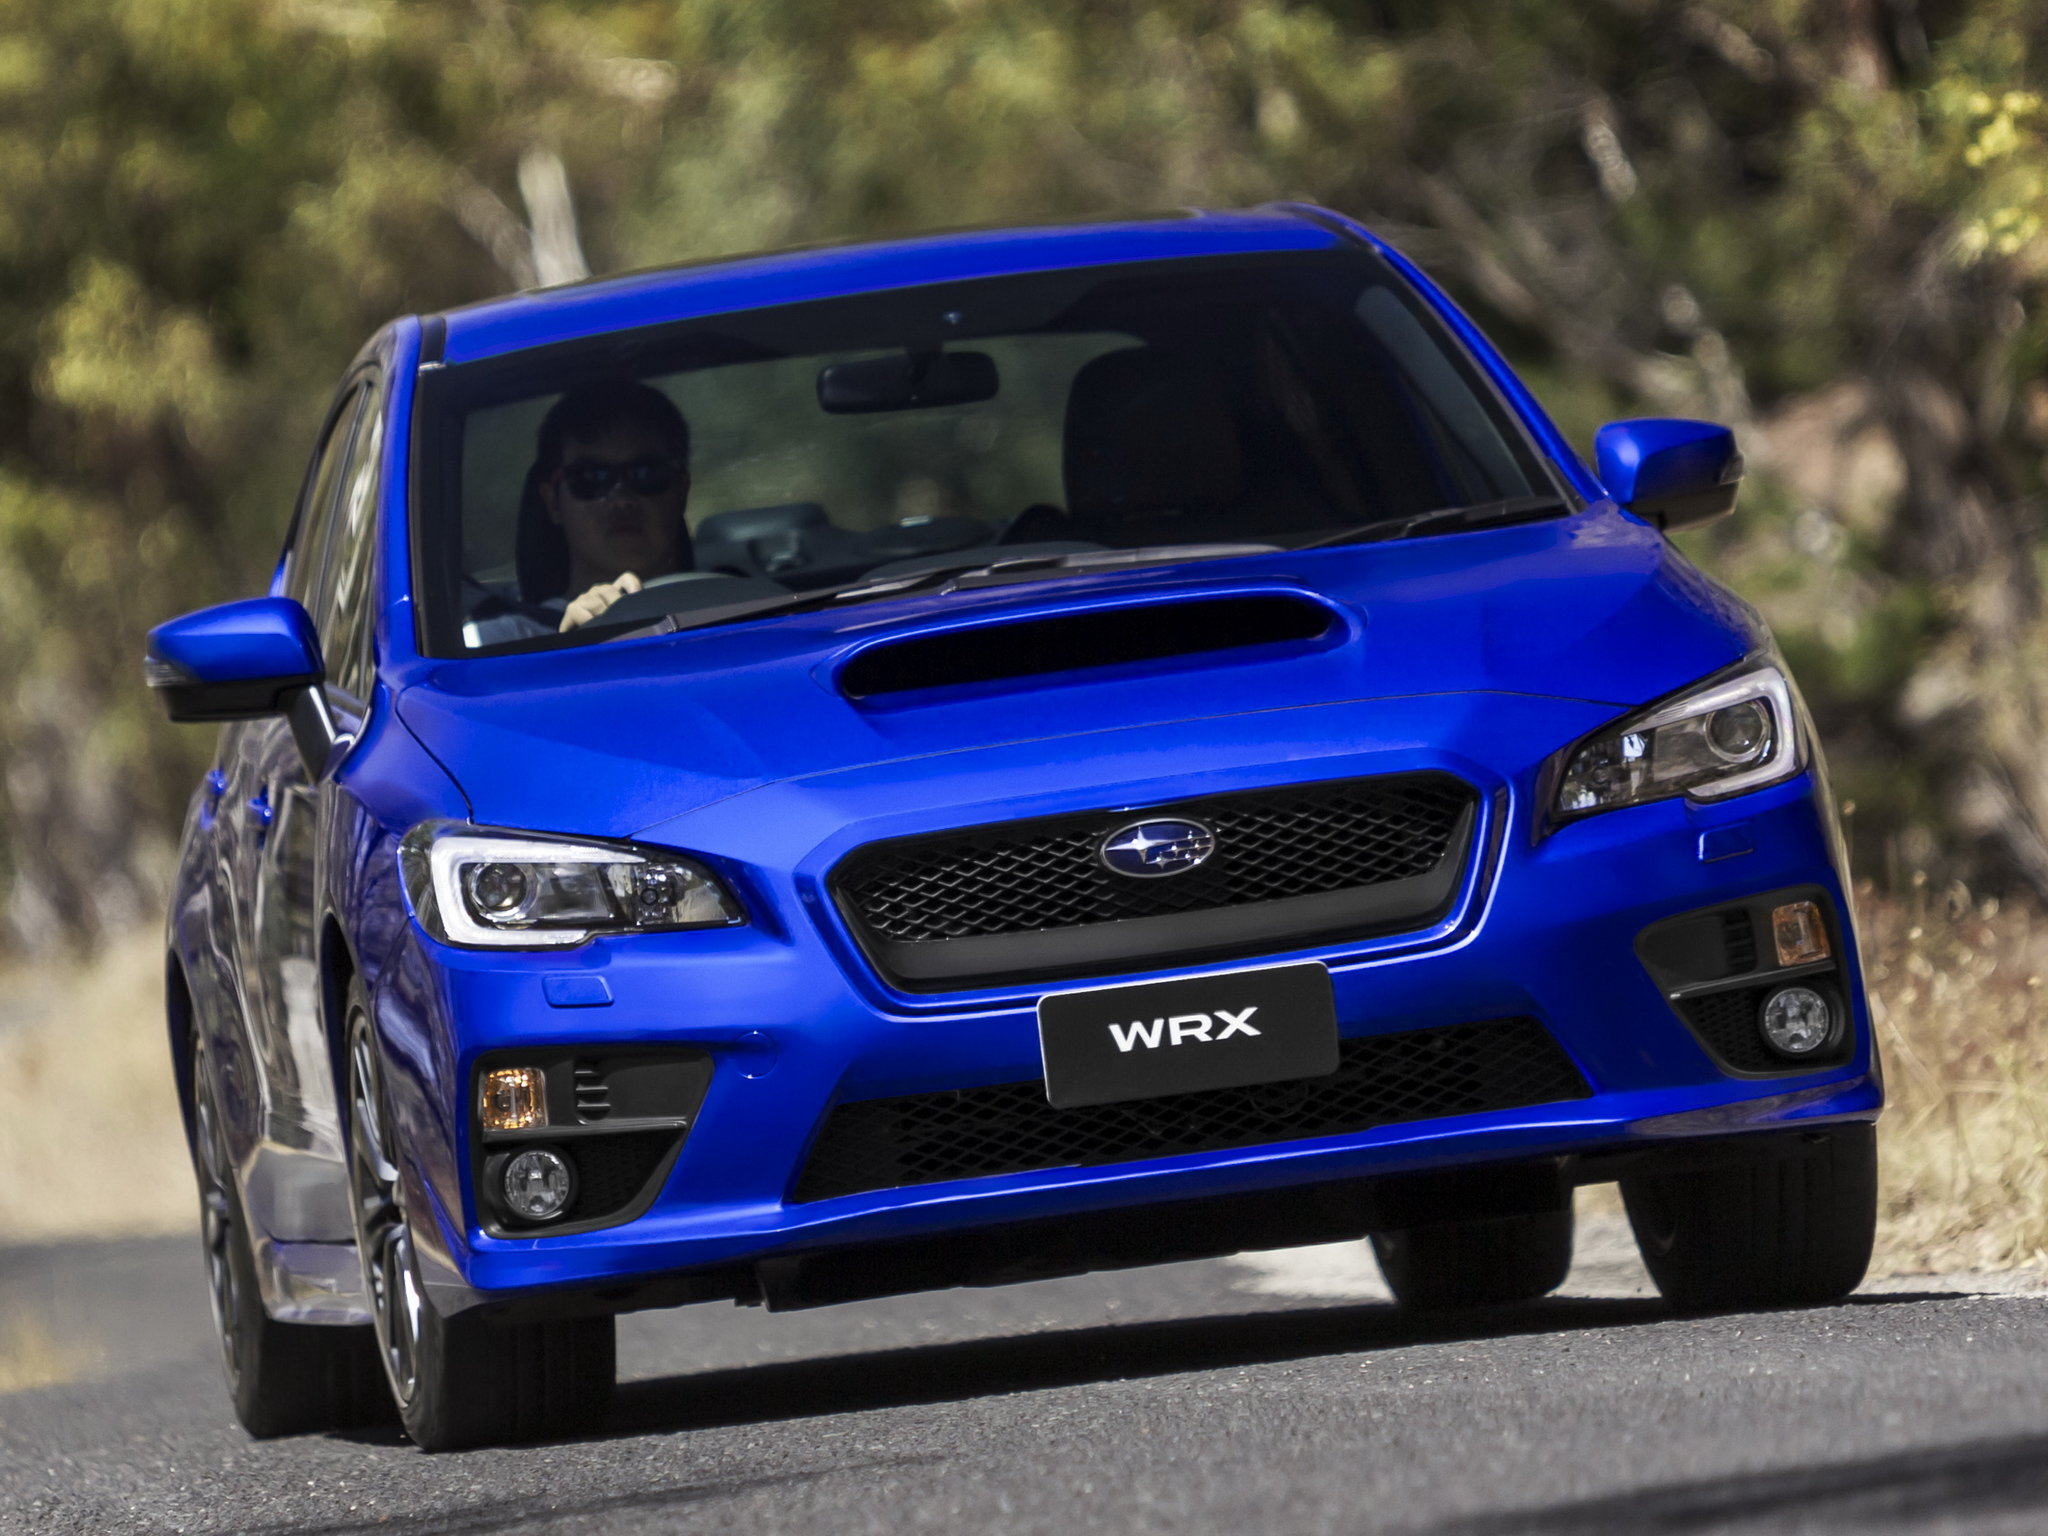 2015 Subaru WRX Sells Almost as Well as the Forester